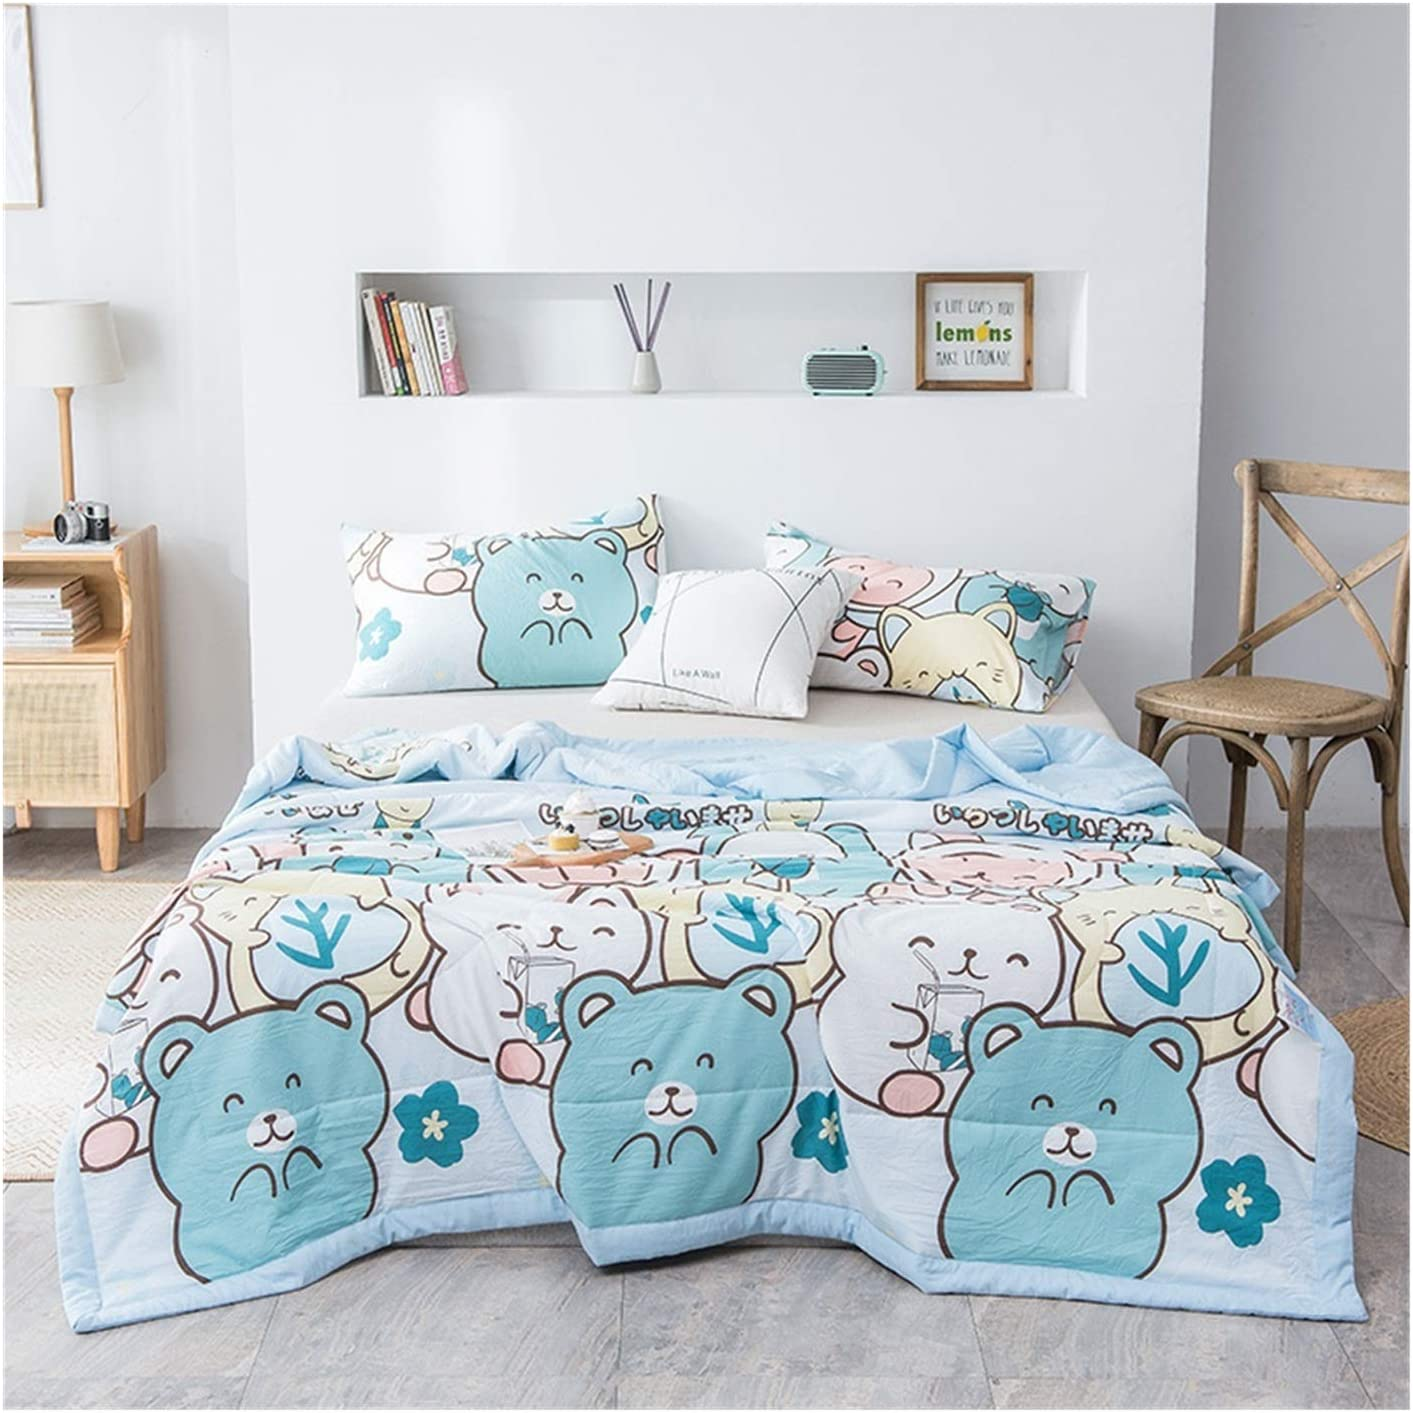 Without Summer Washed Quilt Air-Conditioning Max 80% OFF Comforter Ranking TOP5 Polyester